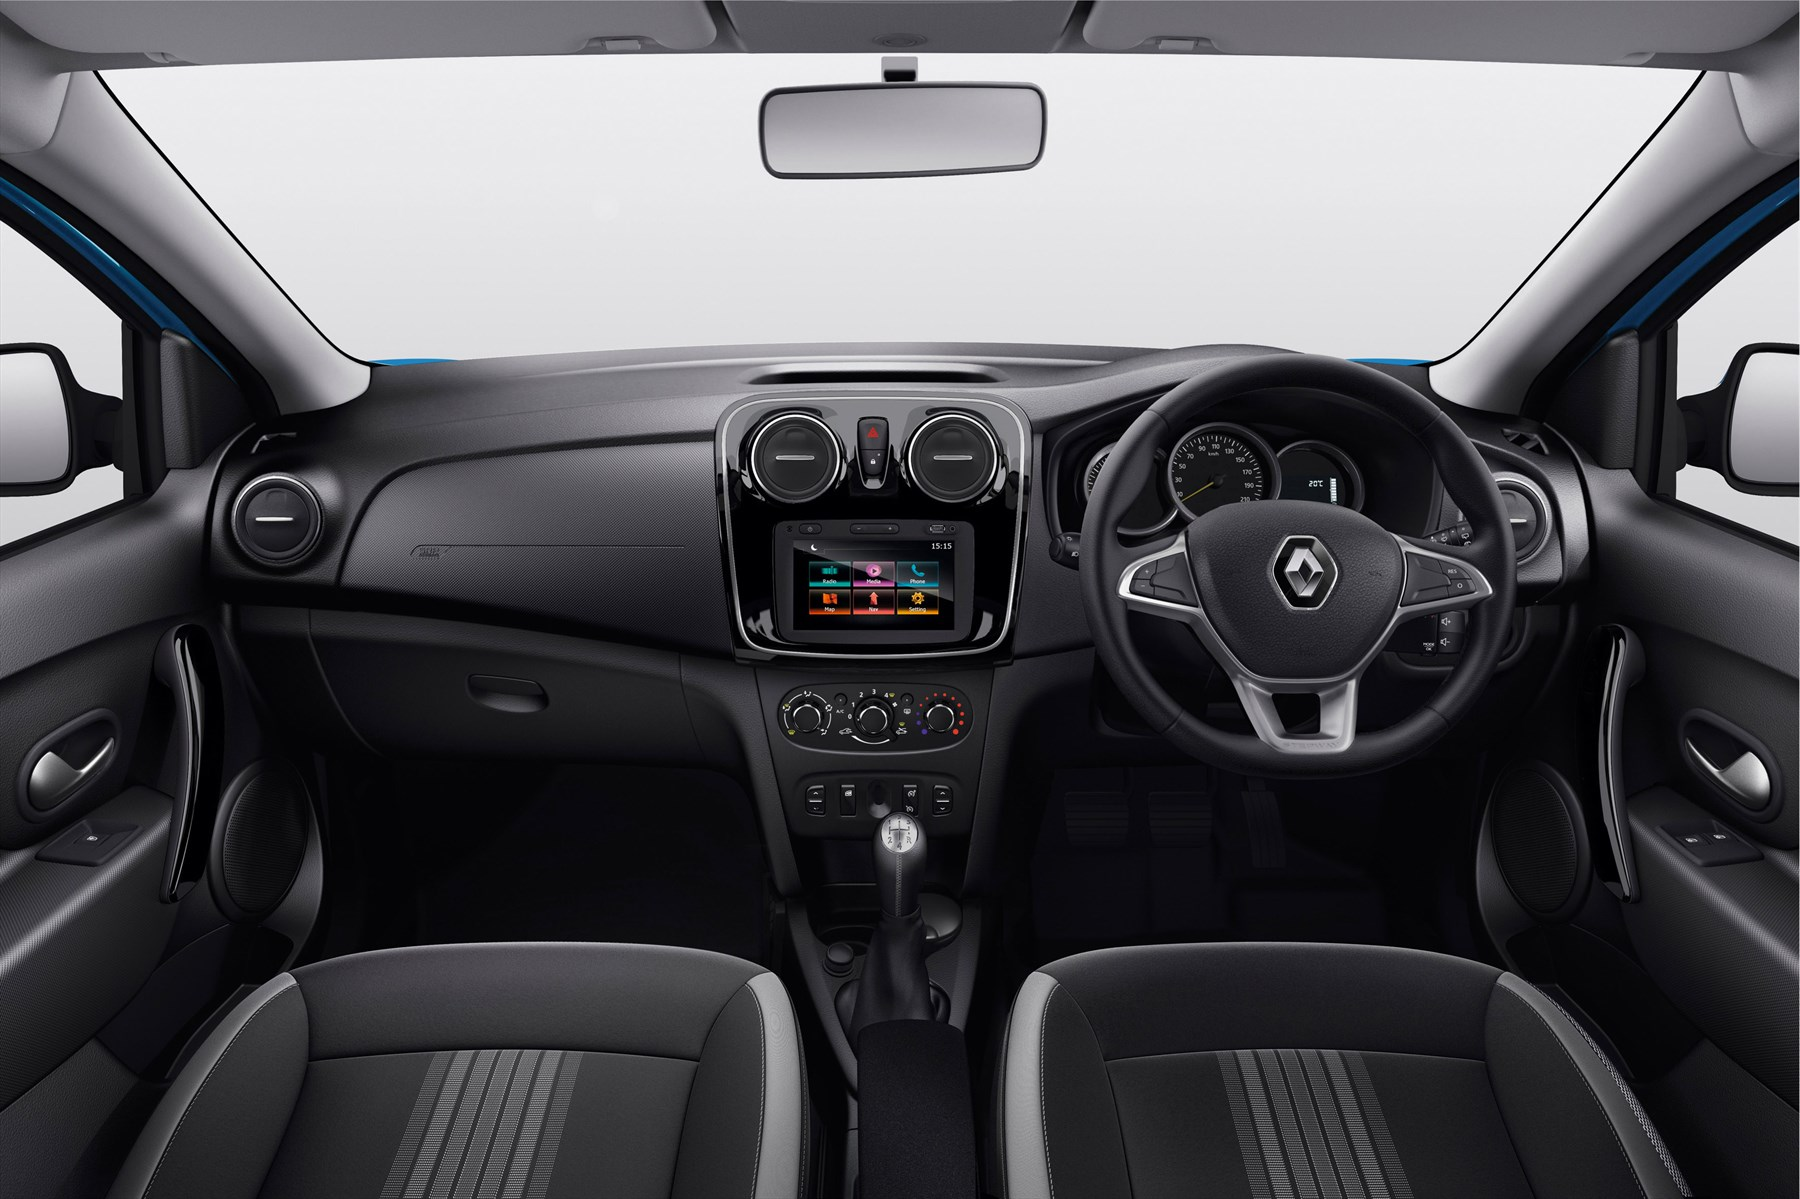 Renault Sandero Range Even More Attractive With The Launch Of The New Sandero Stepway Plus Car